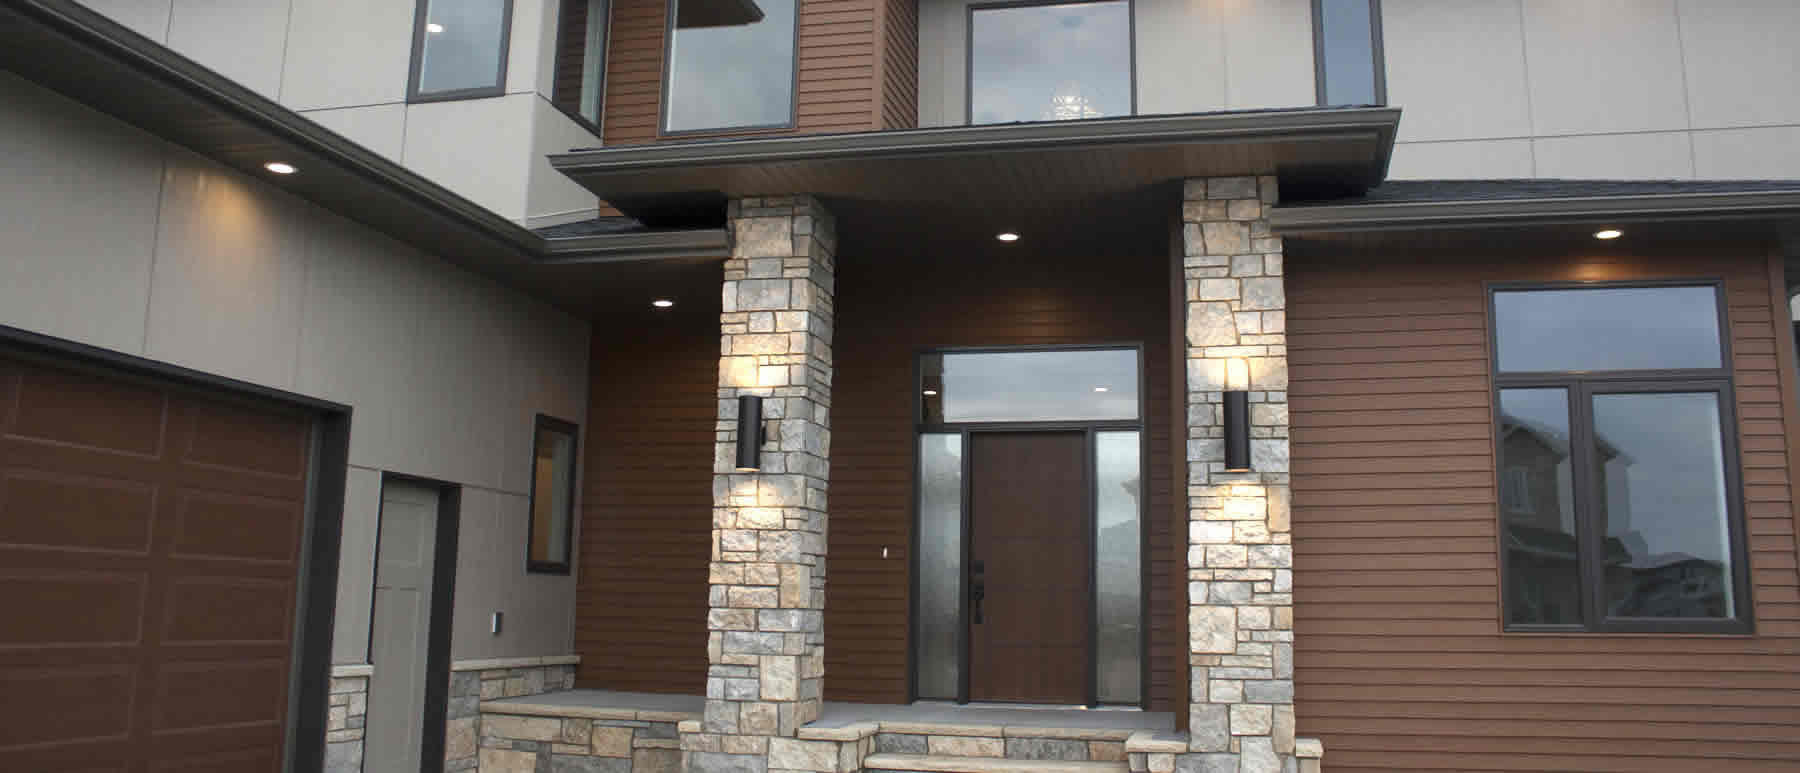 T&S Custom Homes, Inc. of Fargo, ND  - Home page banner 1